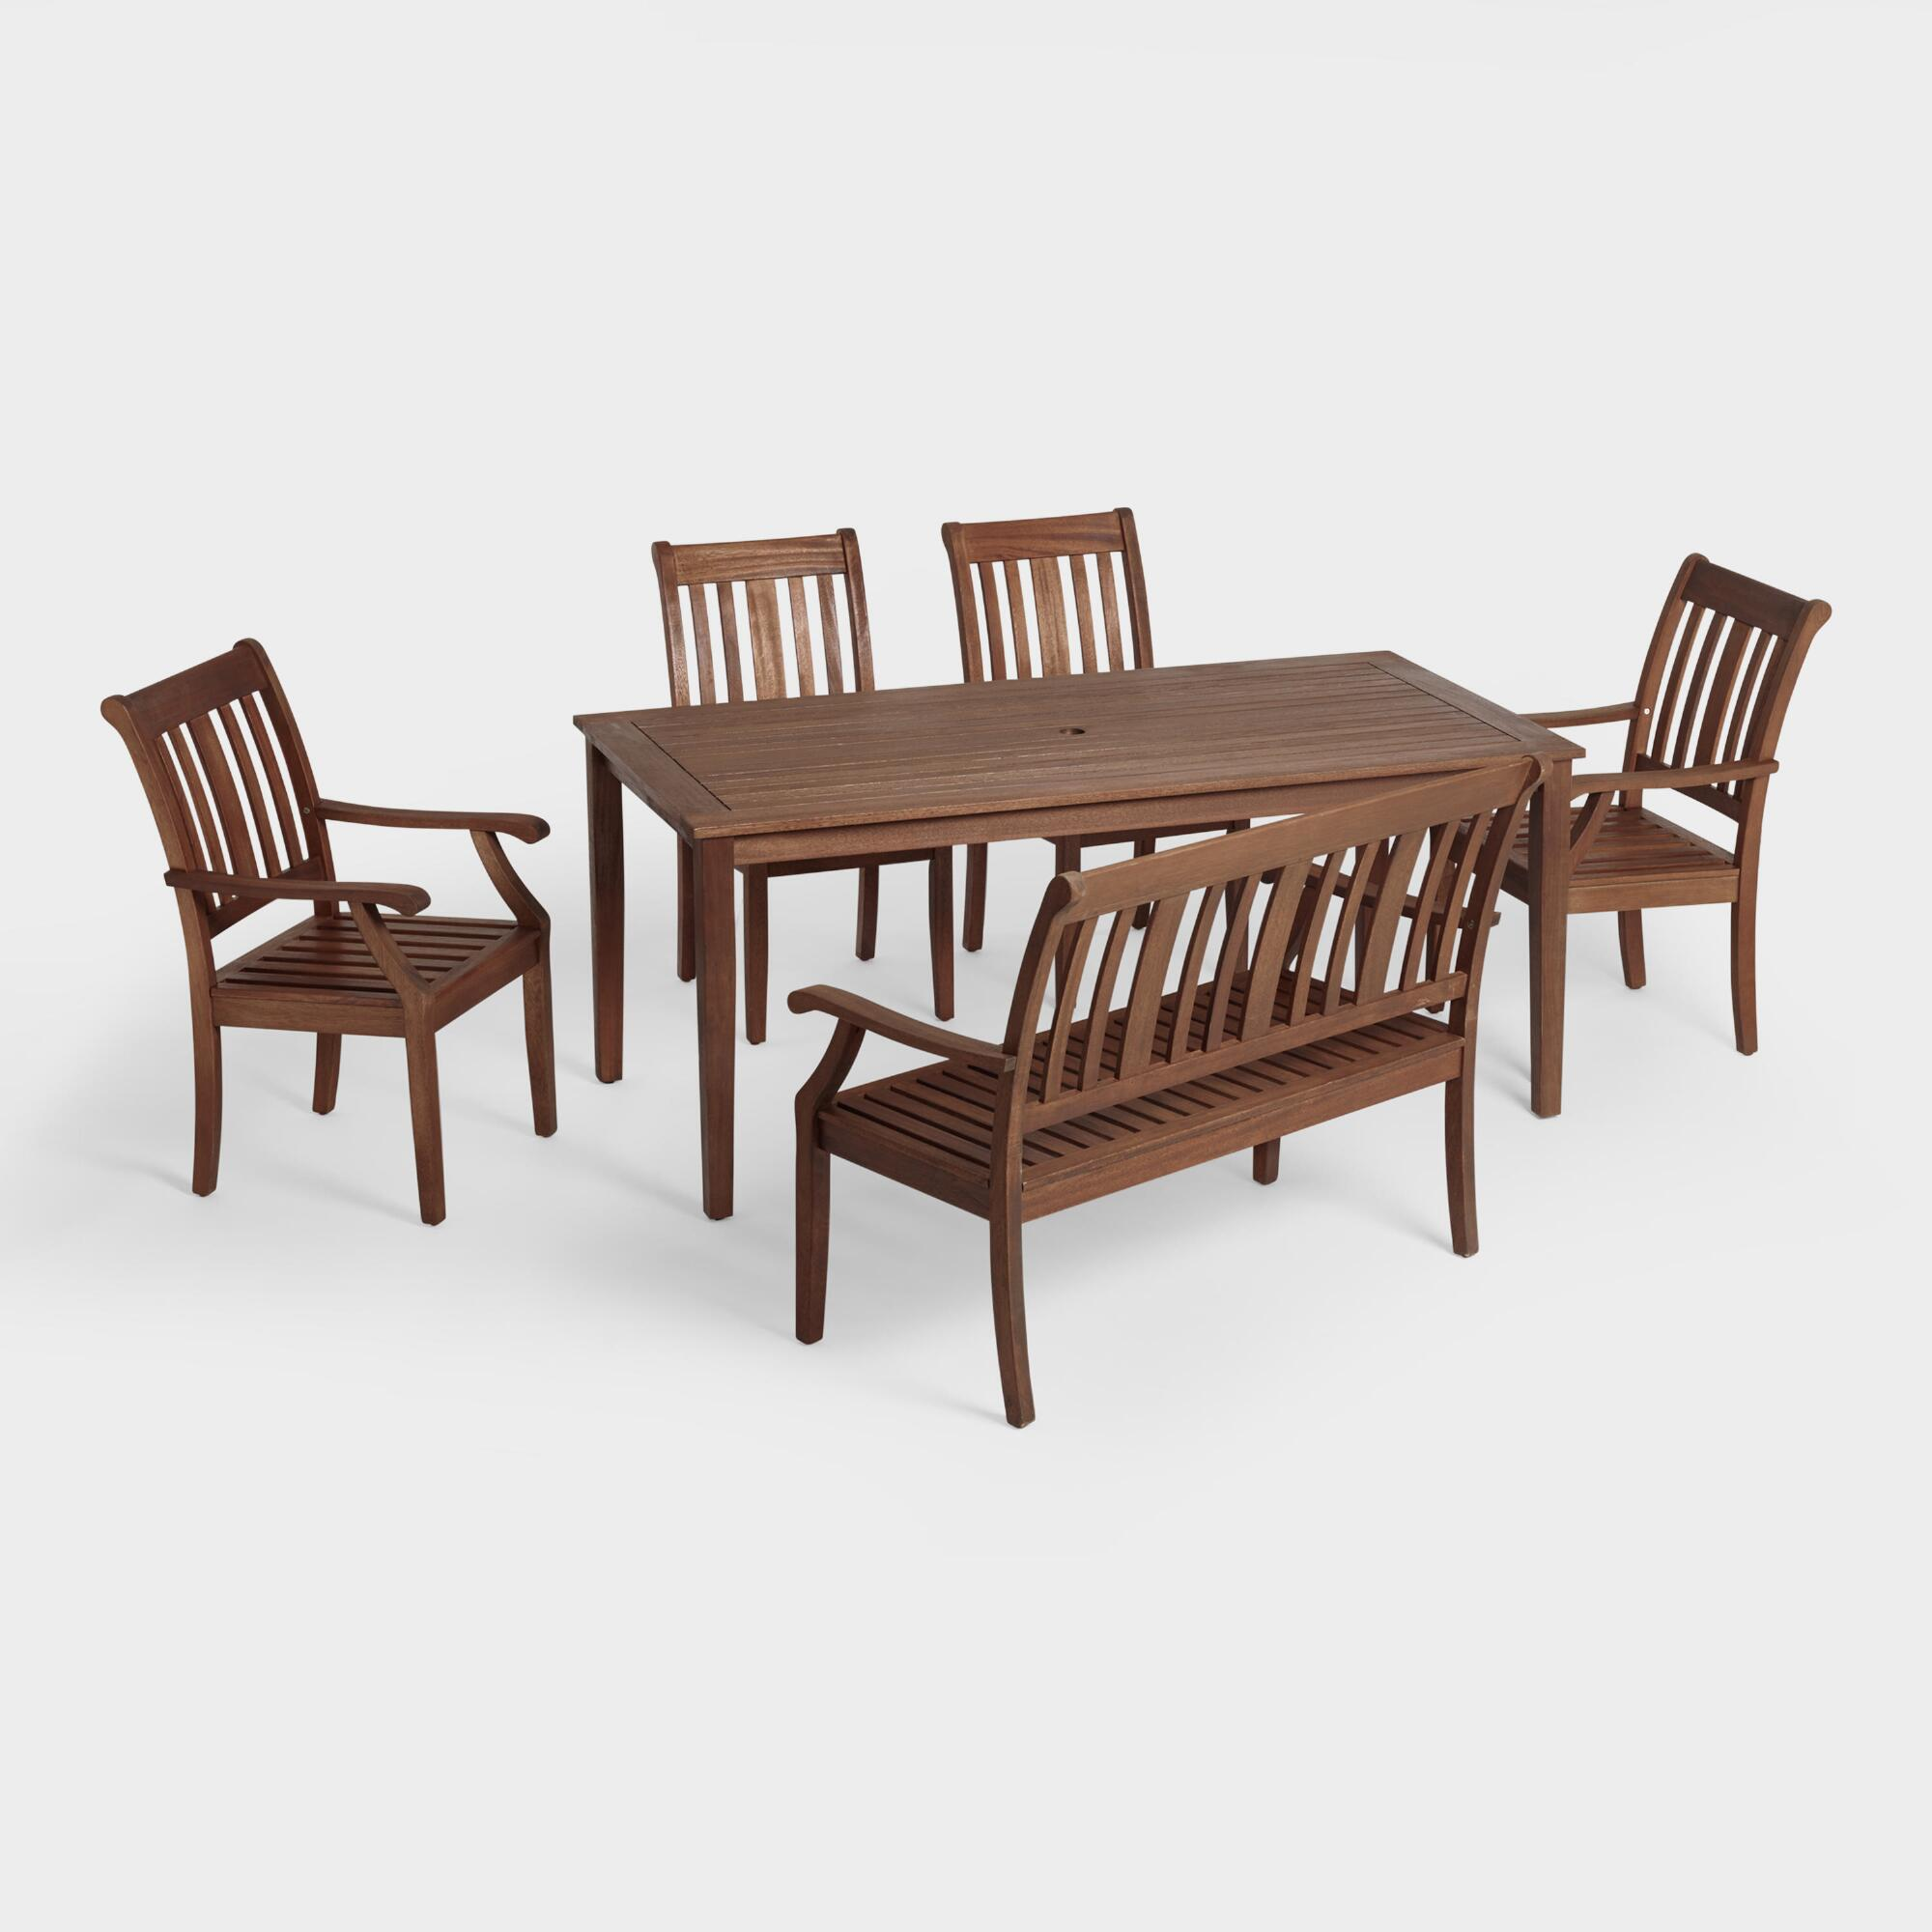 Outdoor table and chairs - St Martin Outdoor Dining Collection